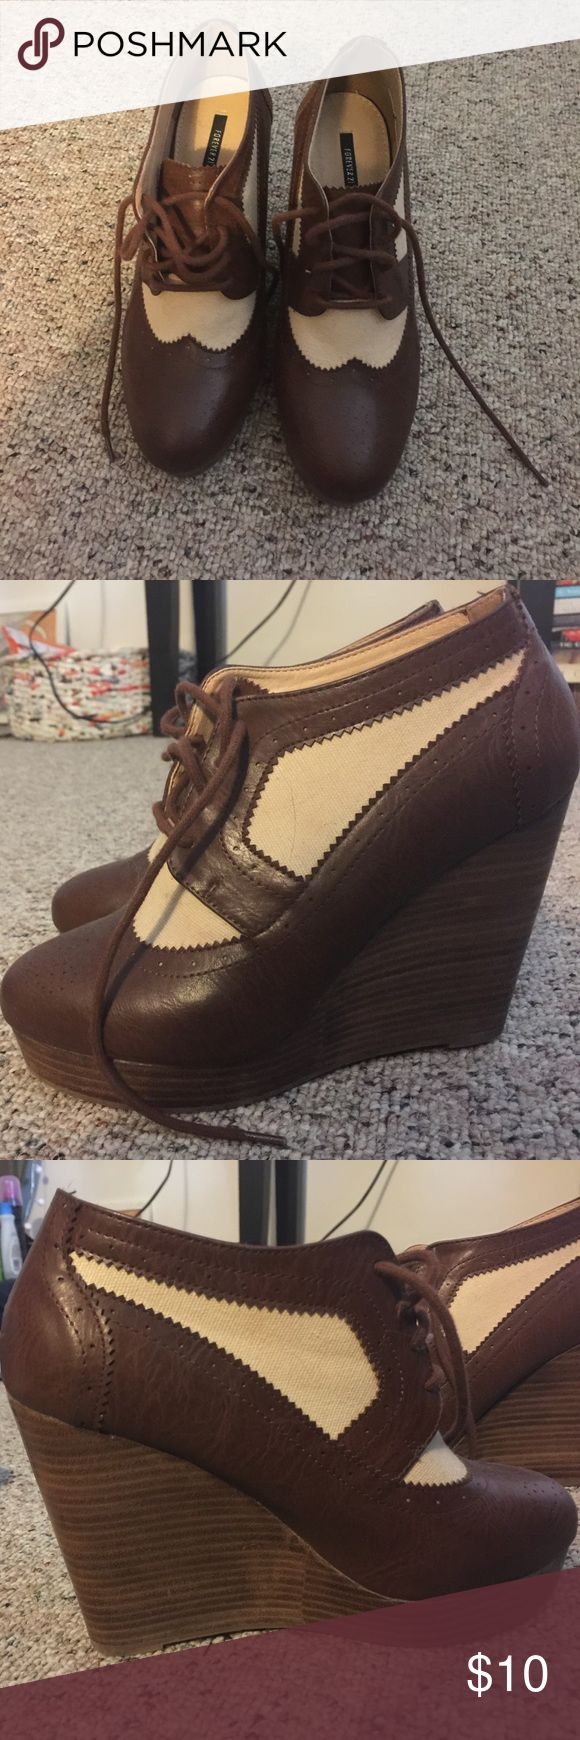 Oxford Wedges Only worn once, oxford wedges! A couple tiny scuff marks but other than that they are in perfect condition! They have laces at brown and tan. Forever 21 Shoes Wedges